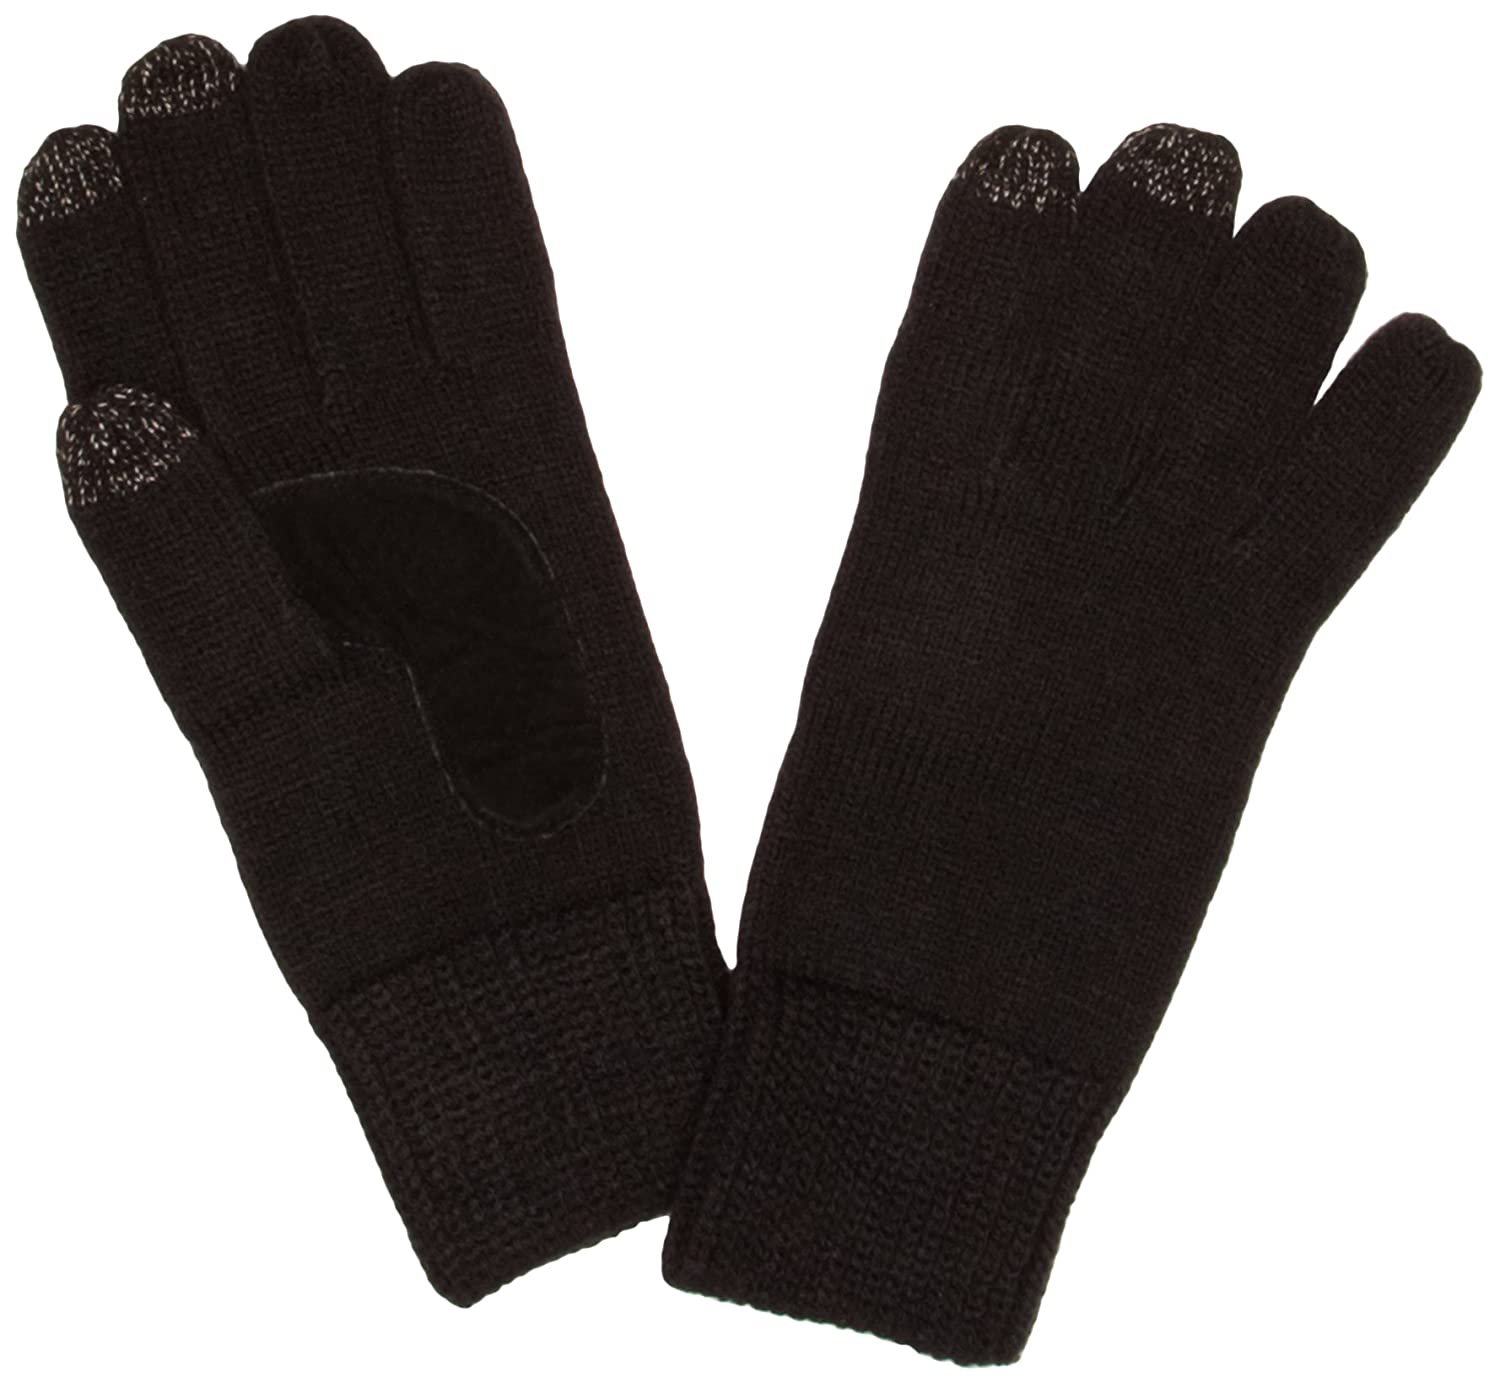 Mens gloves isotoner - Isotoner Chunky Knit 3 Finger Smartouch Men S Gloves Black One Size Amazon Co Uk Clothing